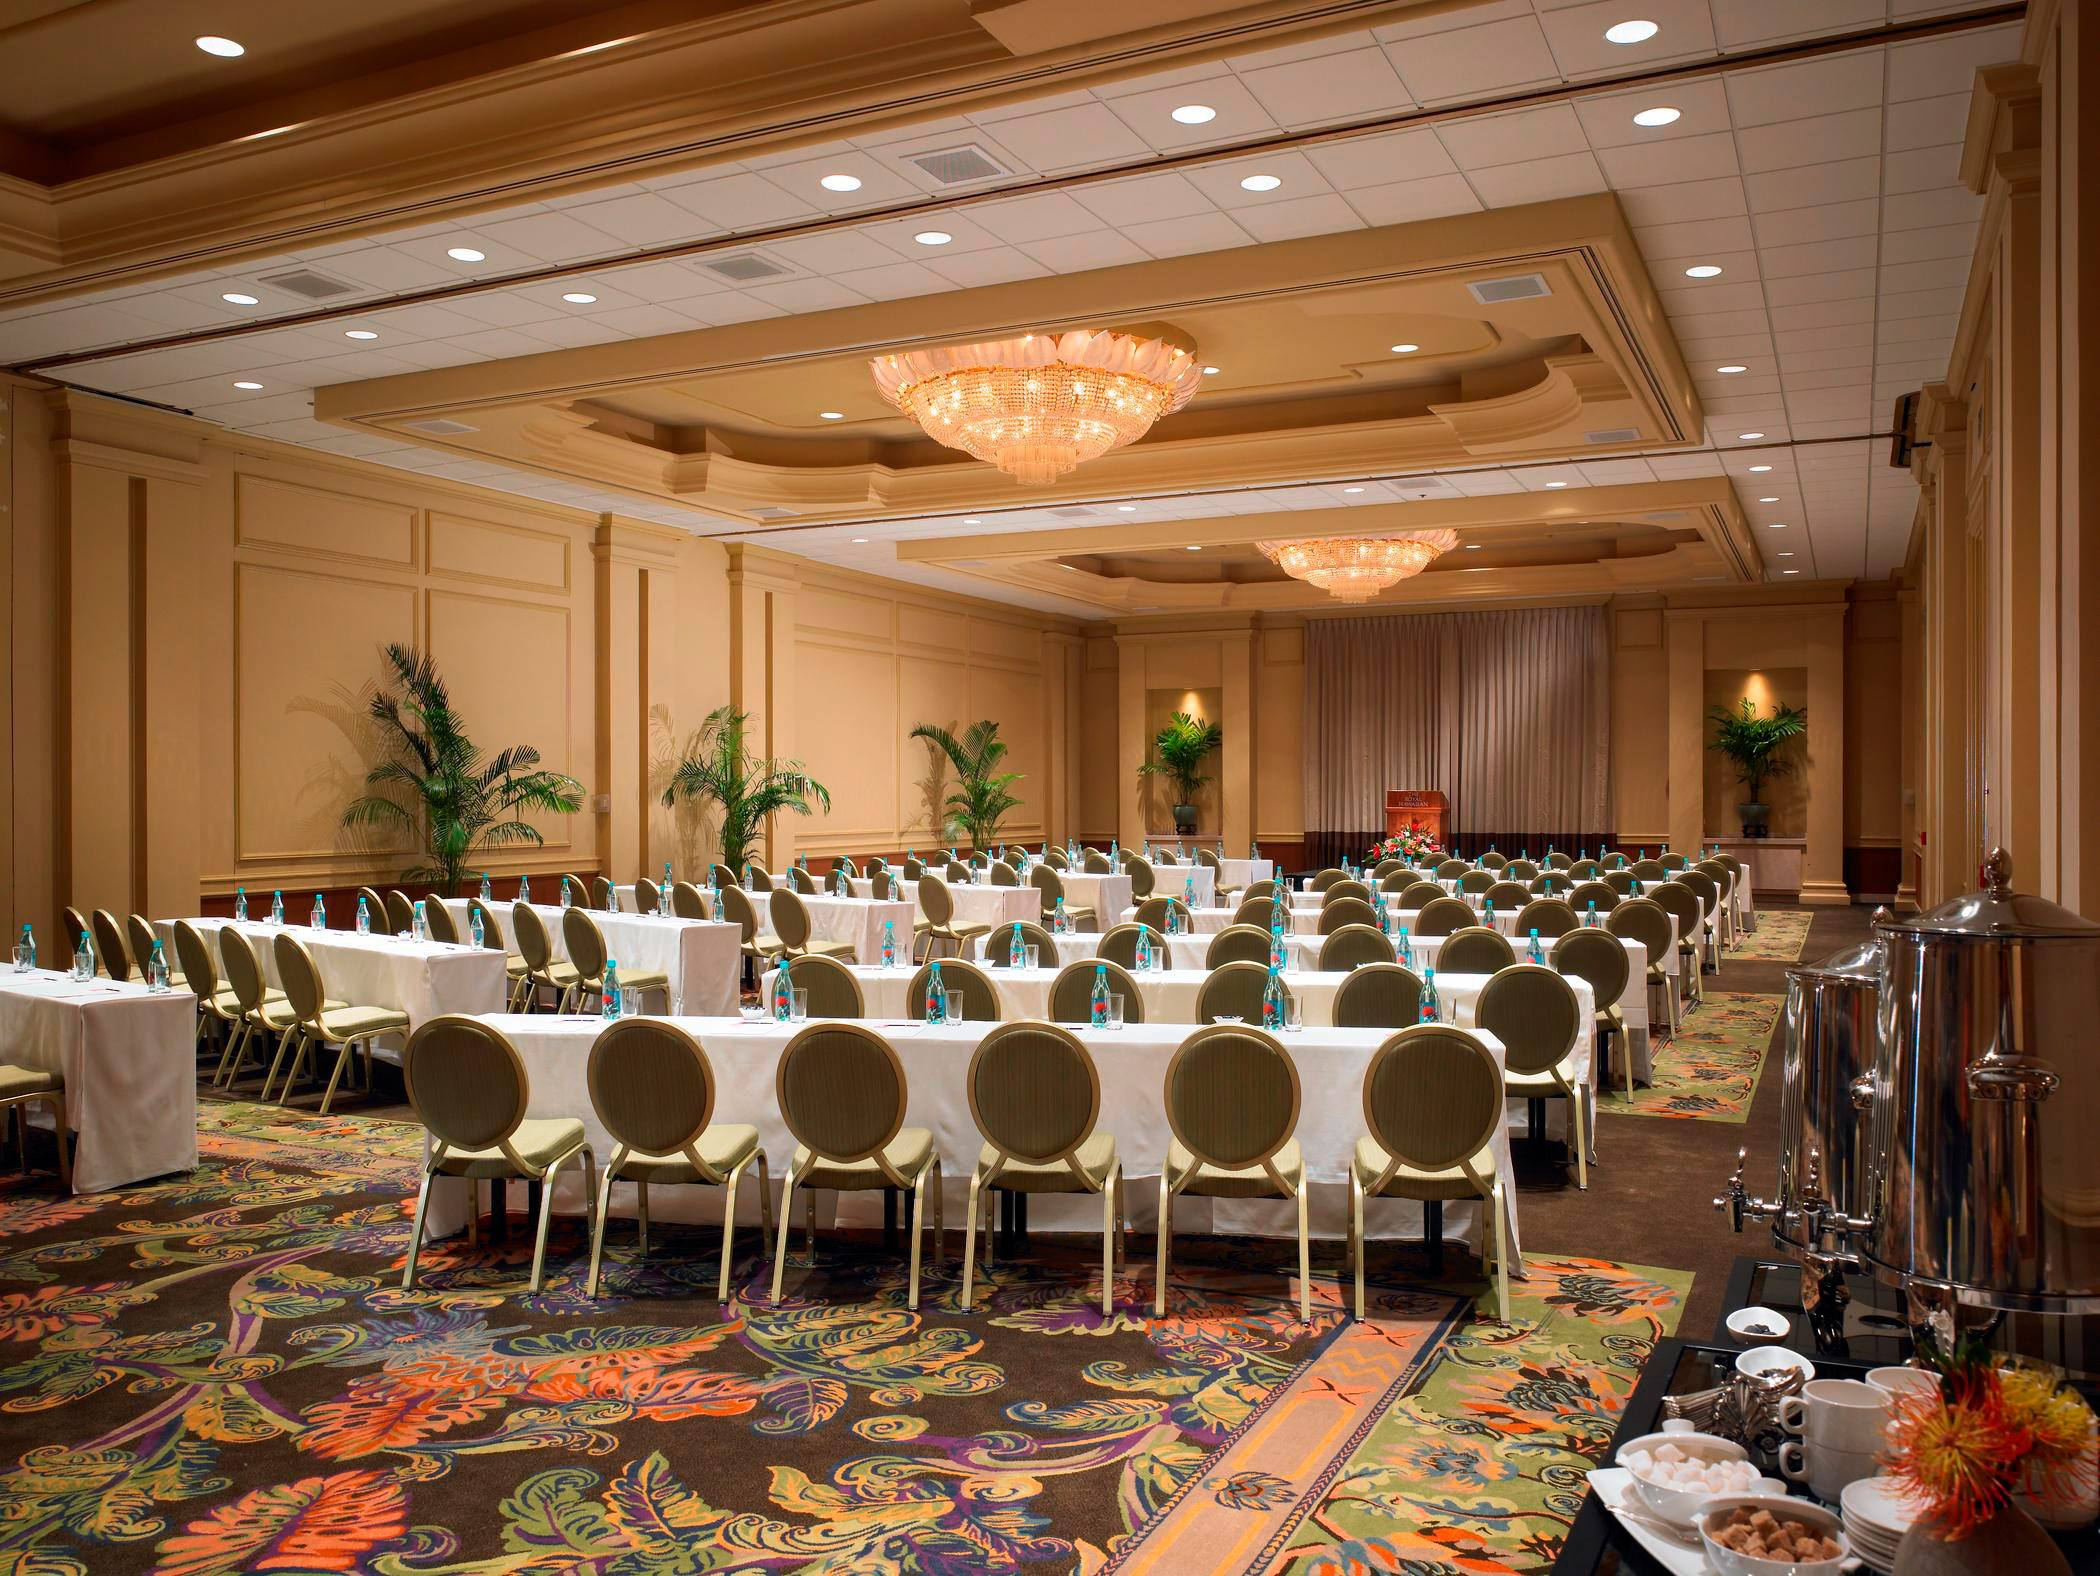 empty tables and chairs in ballroom